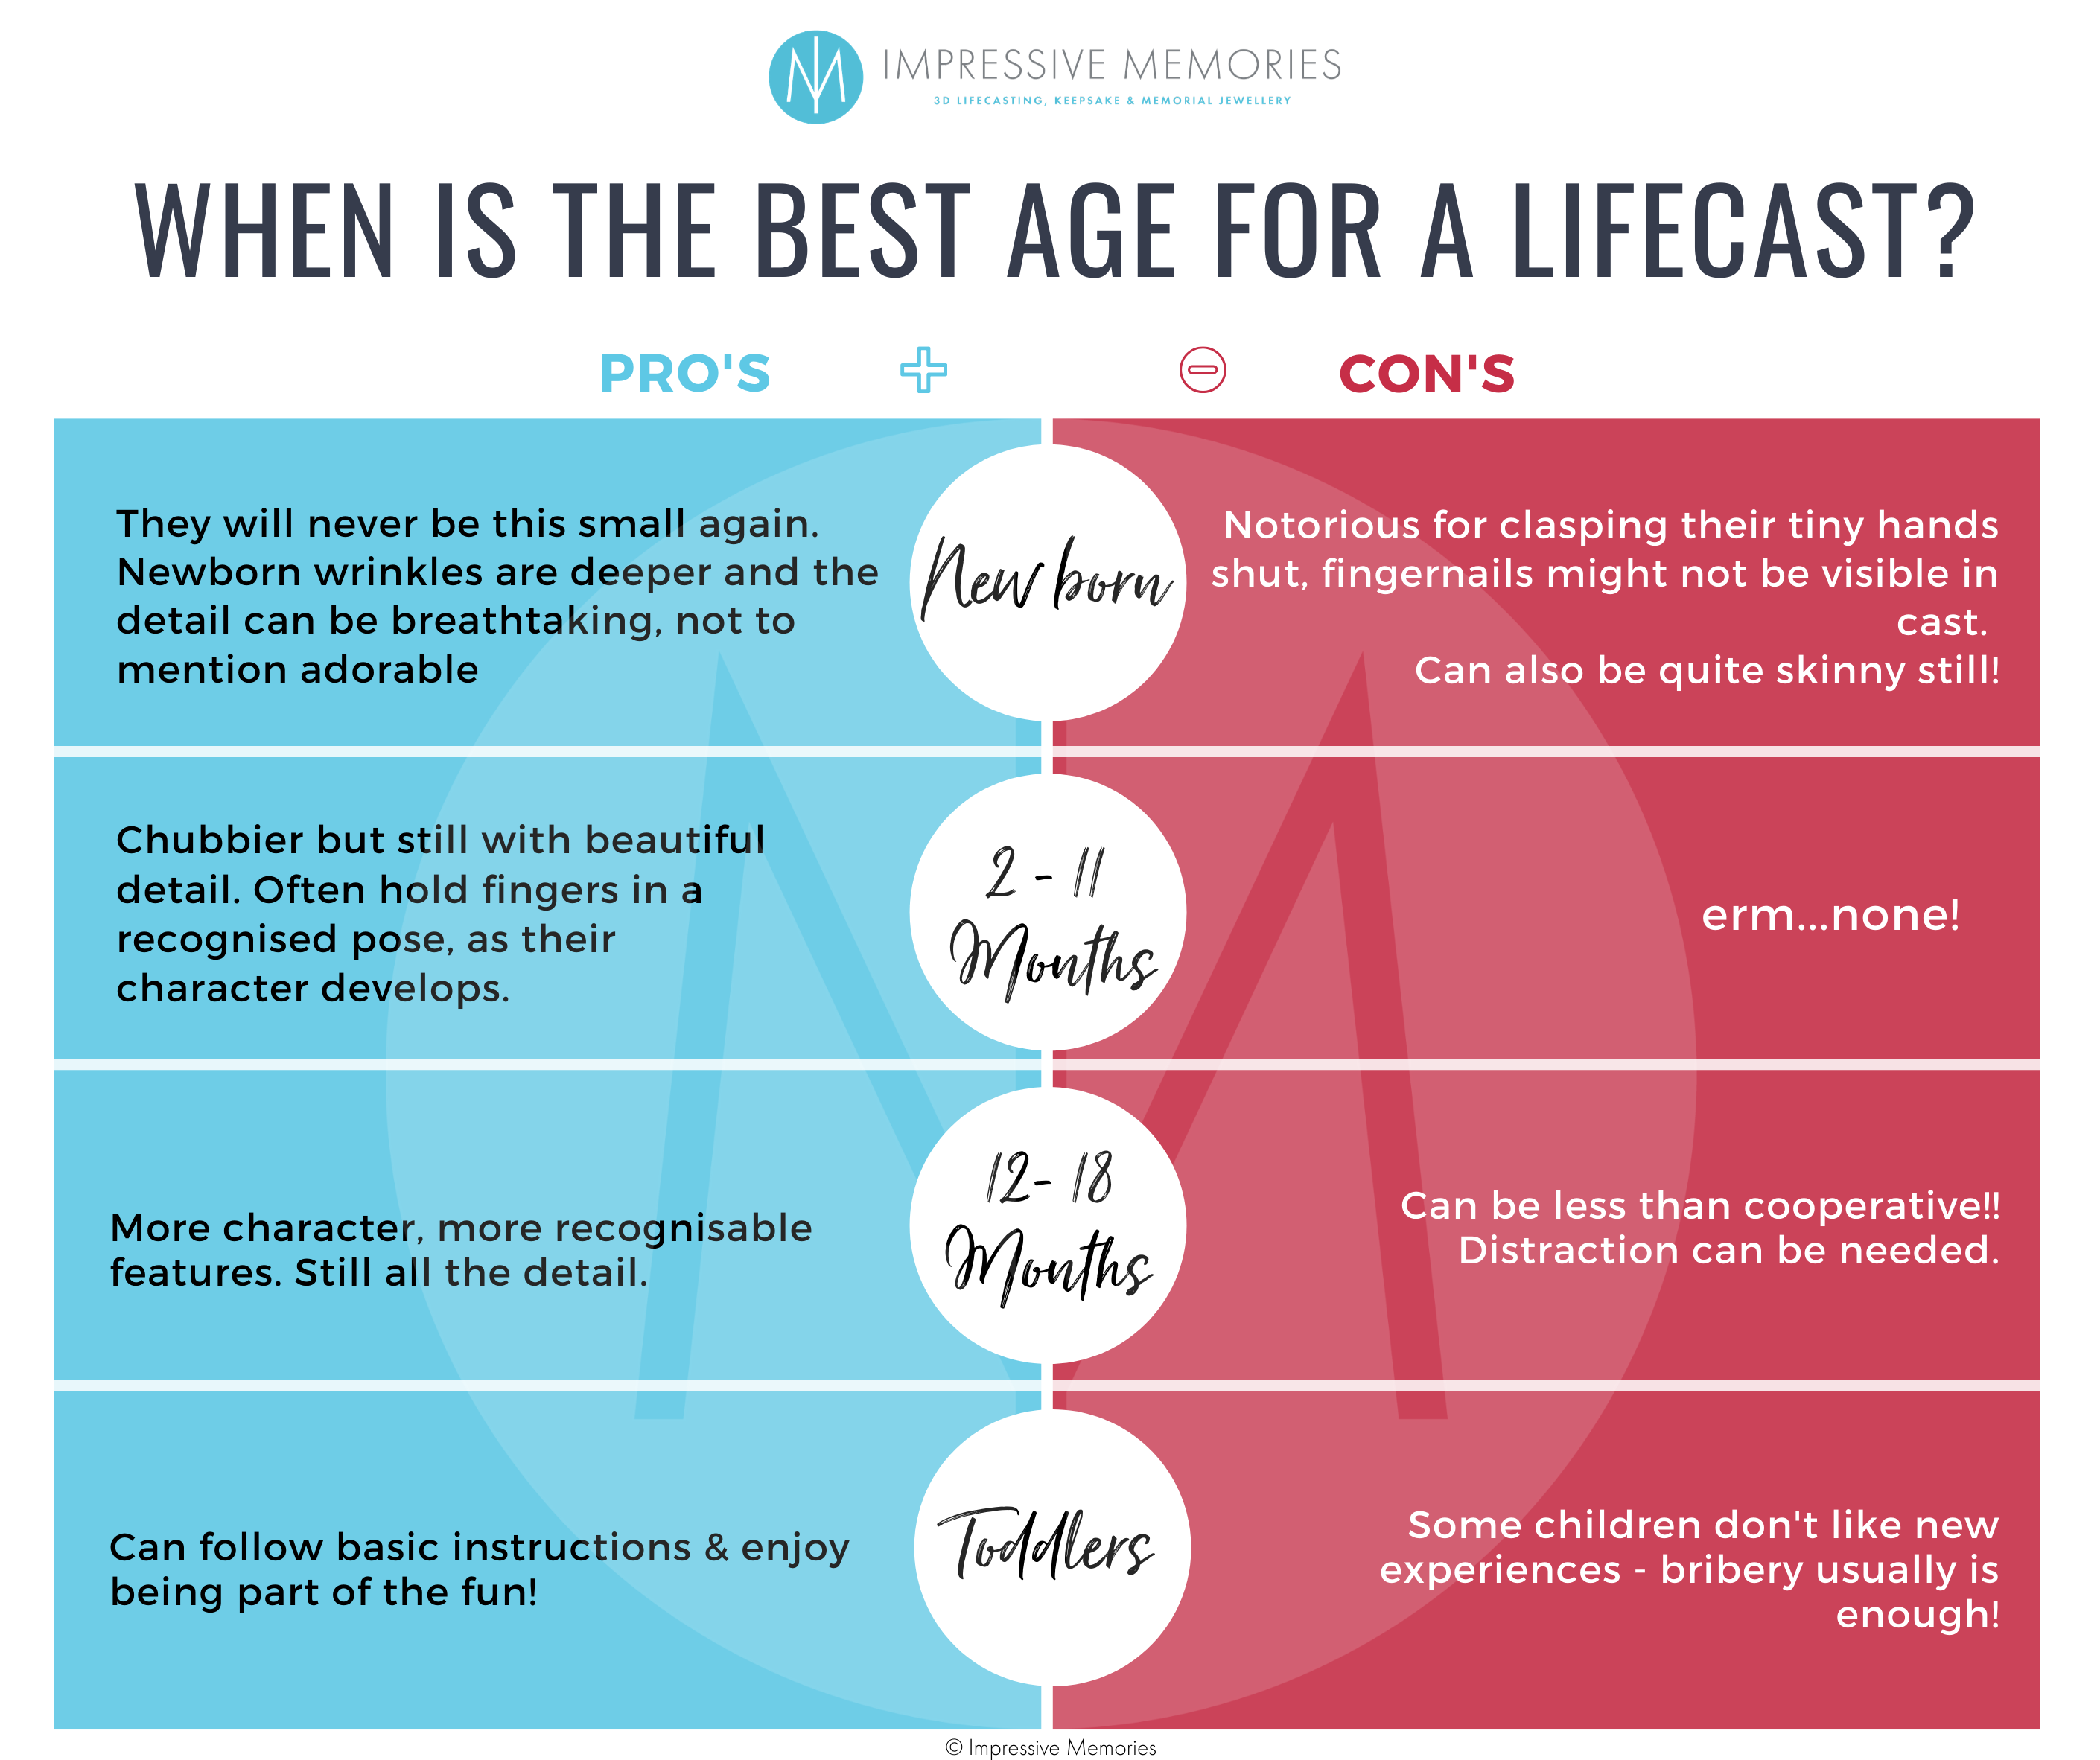 When is the best age to take a lifecast? Newborn, child, adult, elderly or memorial?